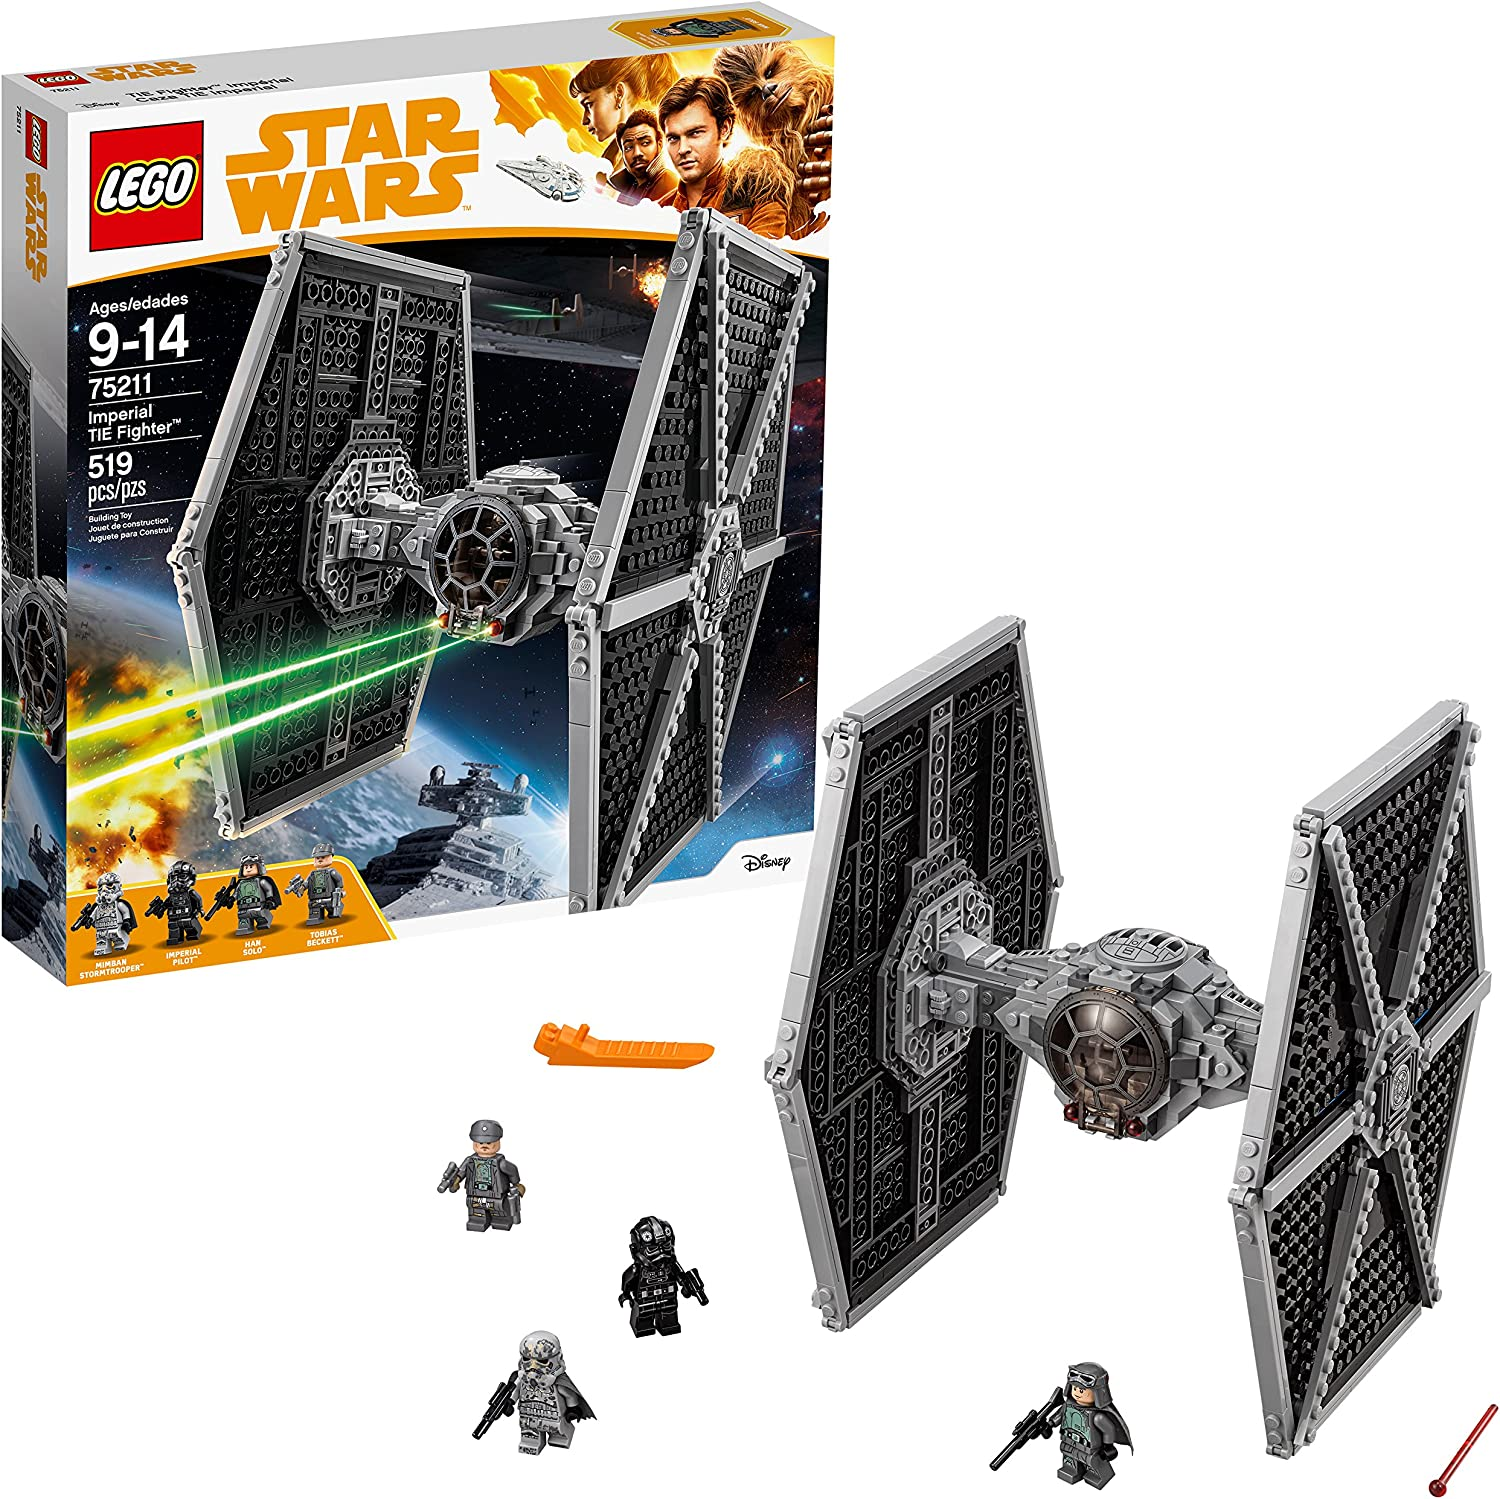 LEGO Star Wars Imperial TIE Fighter 75211 Building Kit (519 Pieces)